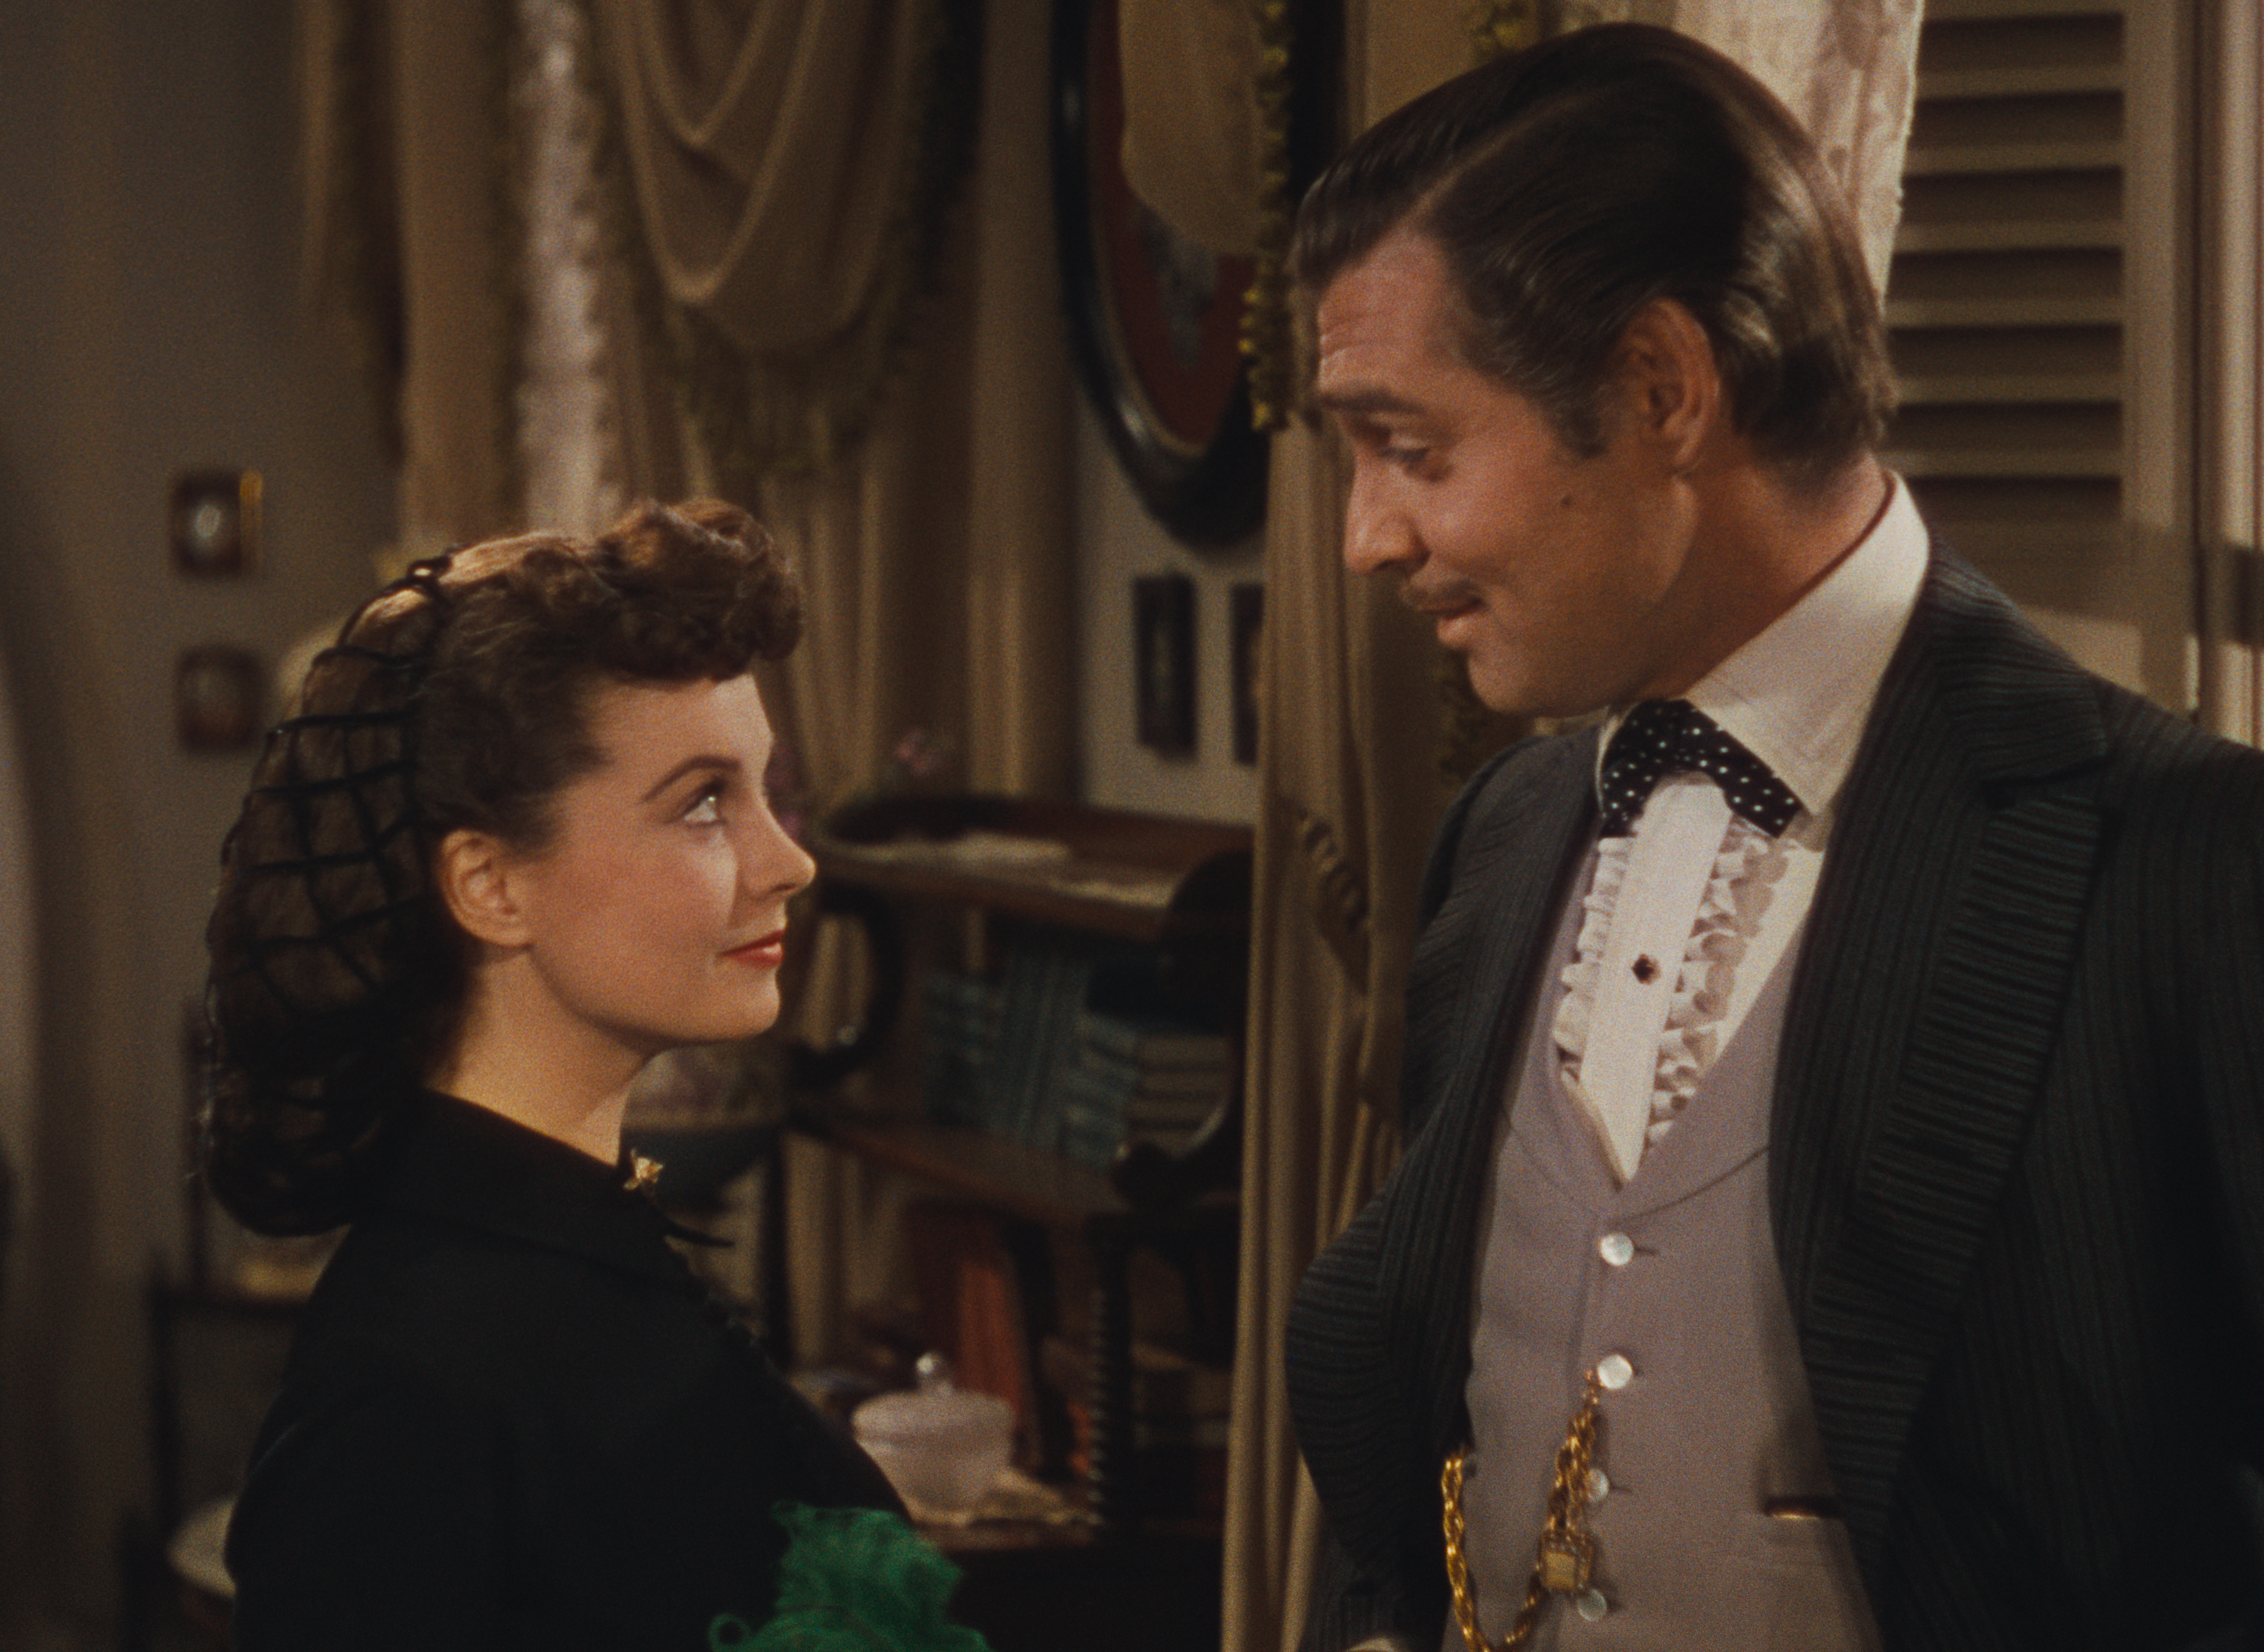 Gone with the wind united states 1939 high tea dreams for Who played scarlett in gone with the wind